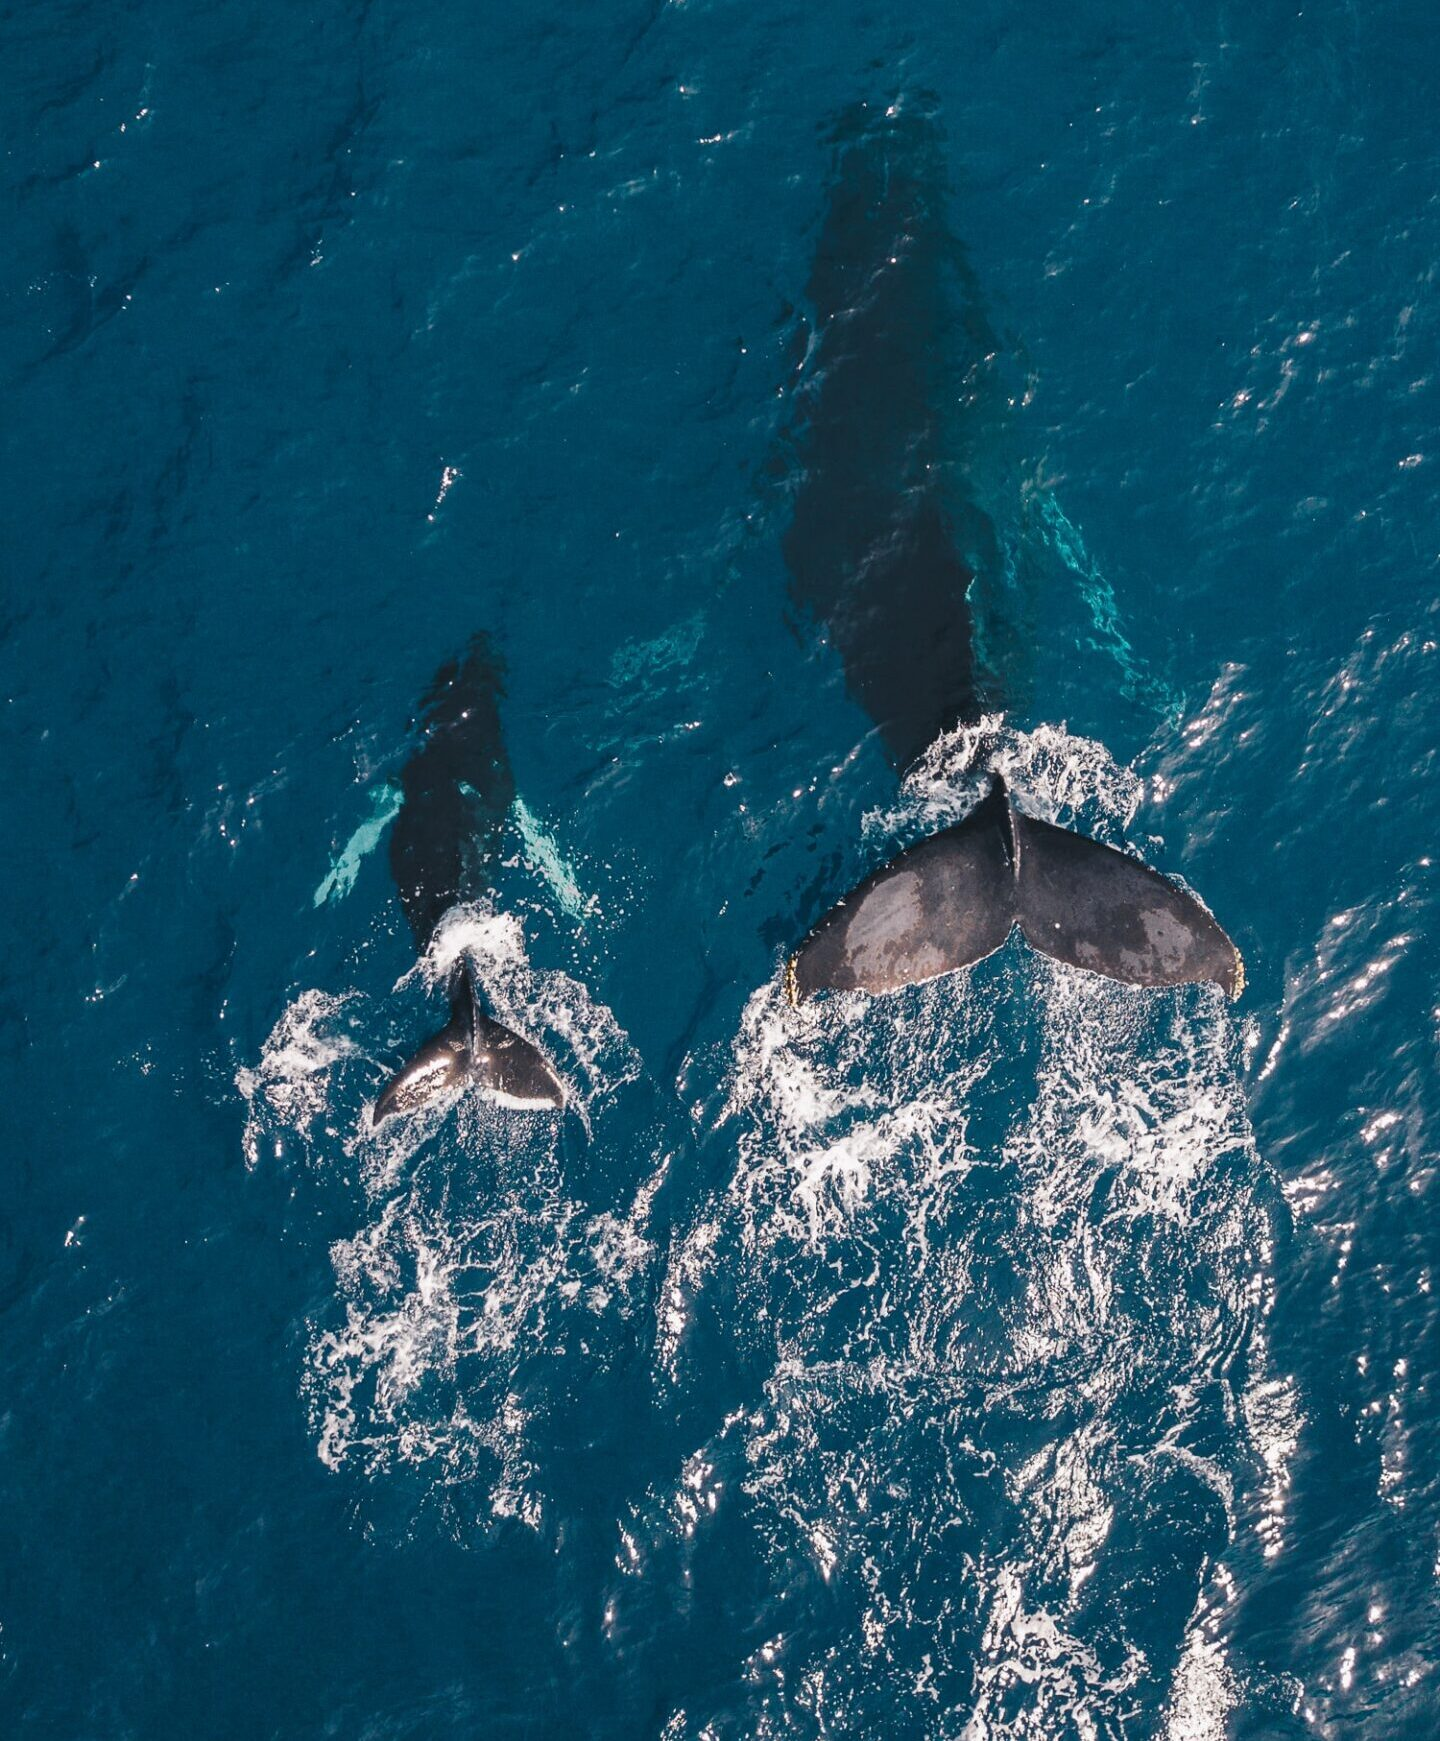 Whales in Maui - Sustainable and Regenerative Tourism Summit Maui